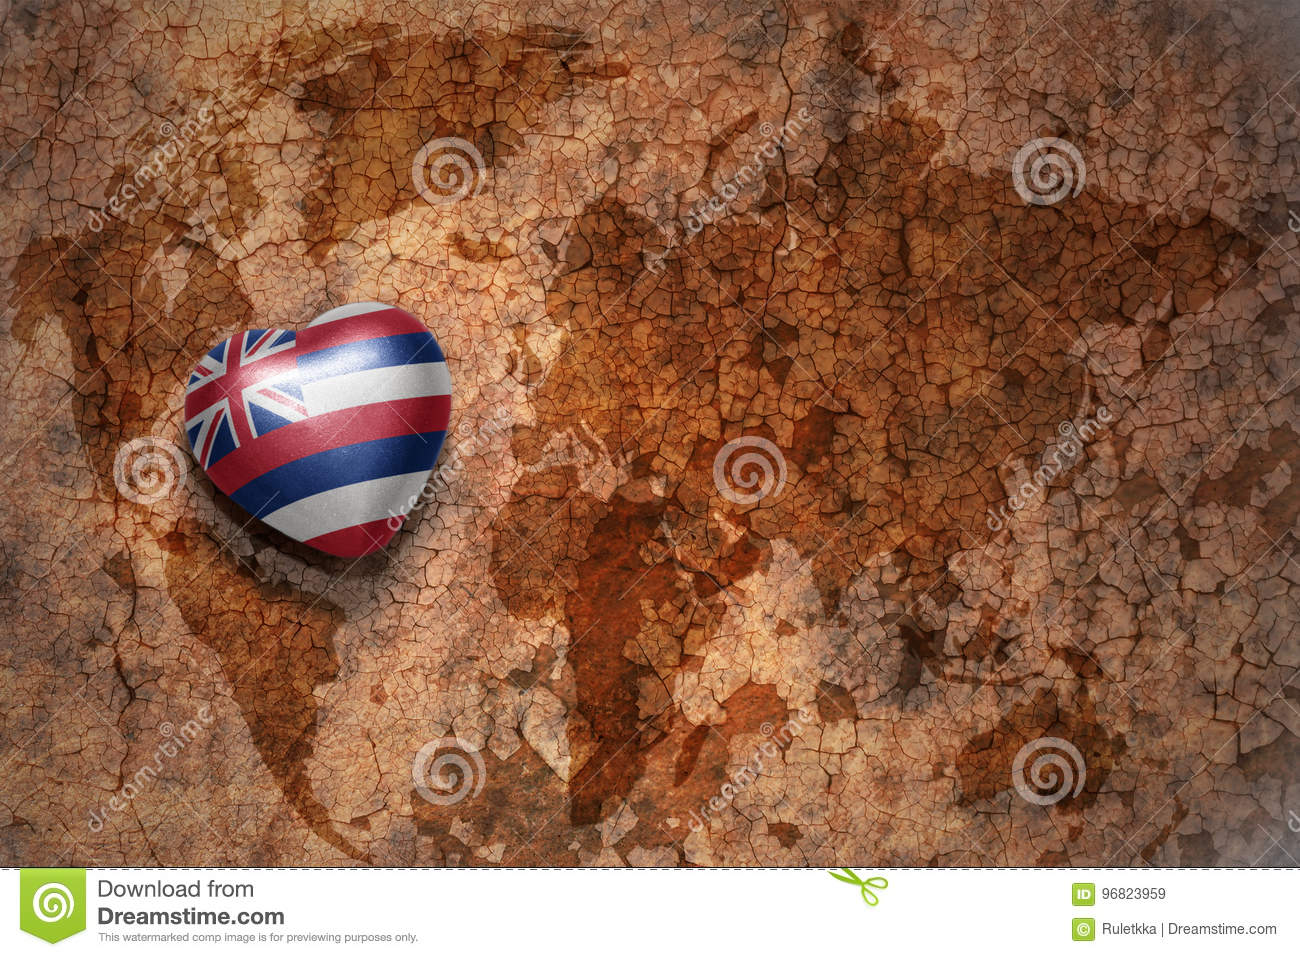 Heart with hawaii state flag on a vintage world map crack paper background